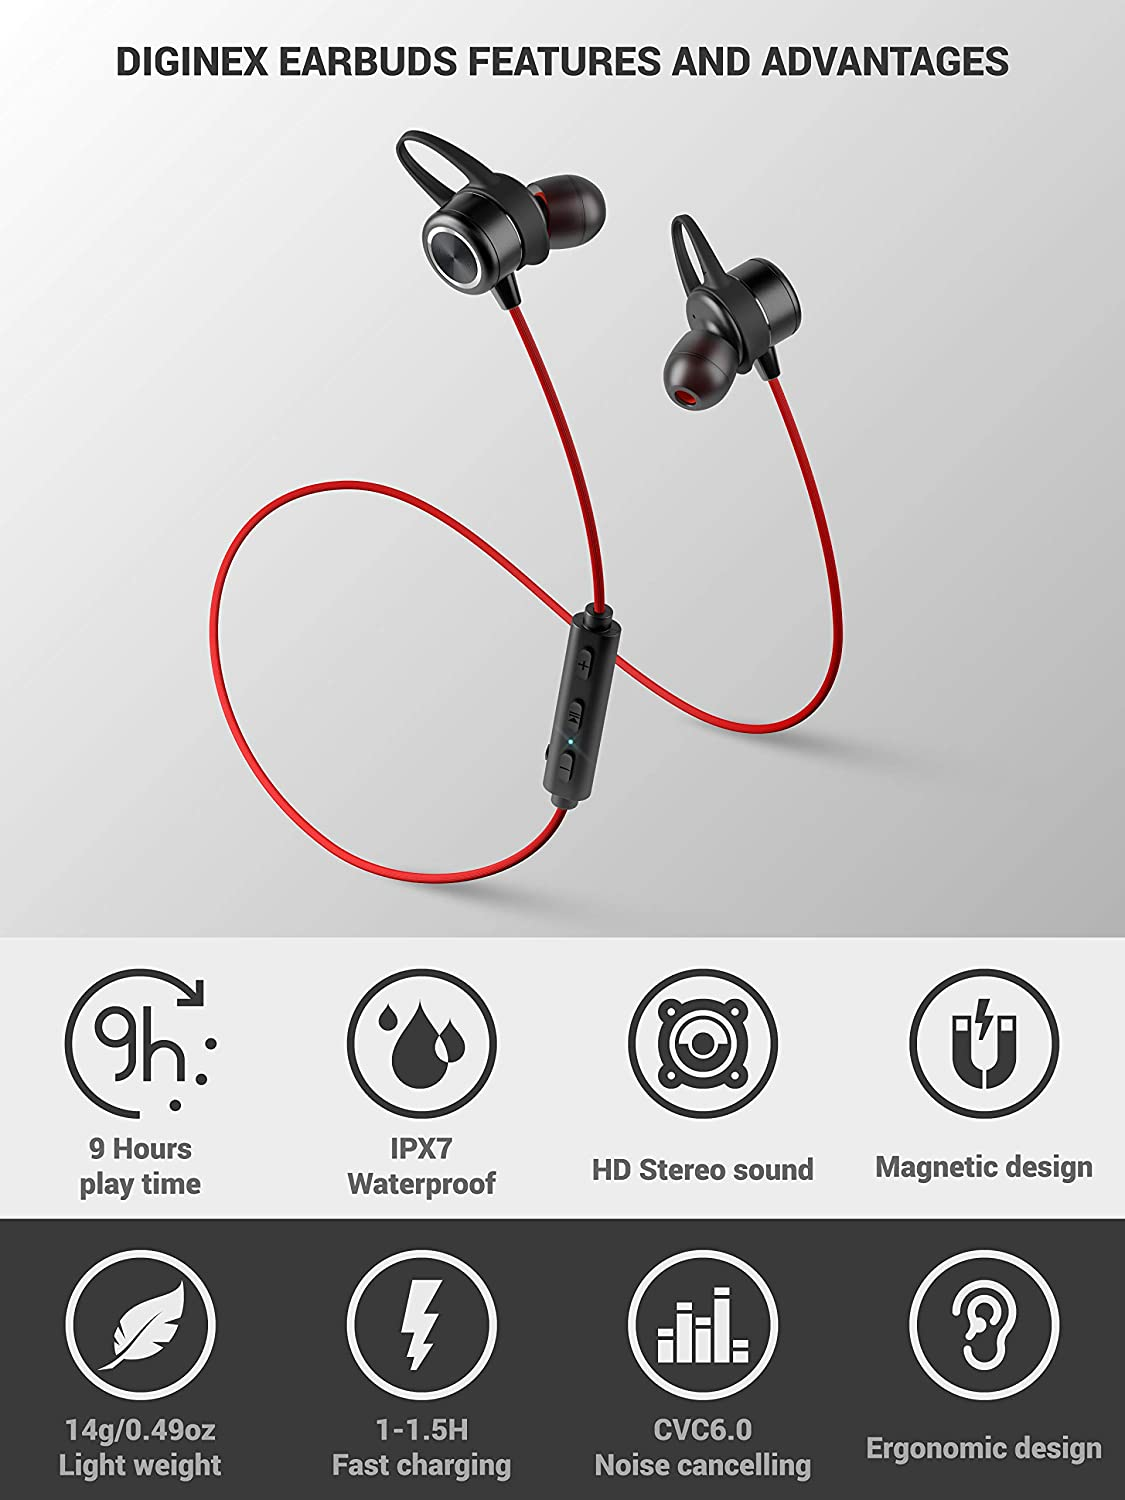 Wireless Magnetic Headset Bluetooth Earbuds Sport Earphones for Running Diginex 9 Hours Playtime Noise Cancelling Mic IPX7 Waterproof Headphones Stereo Sound 1 Hour Recharge Red